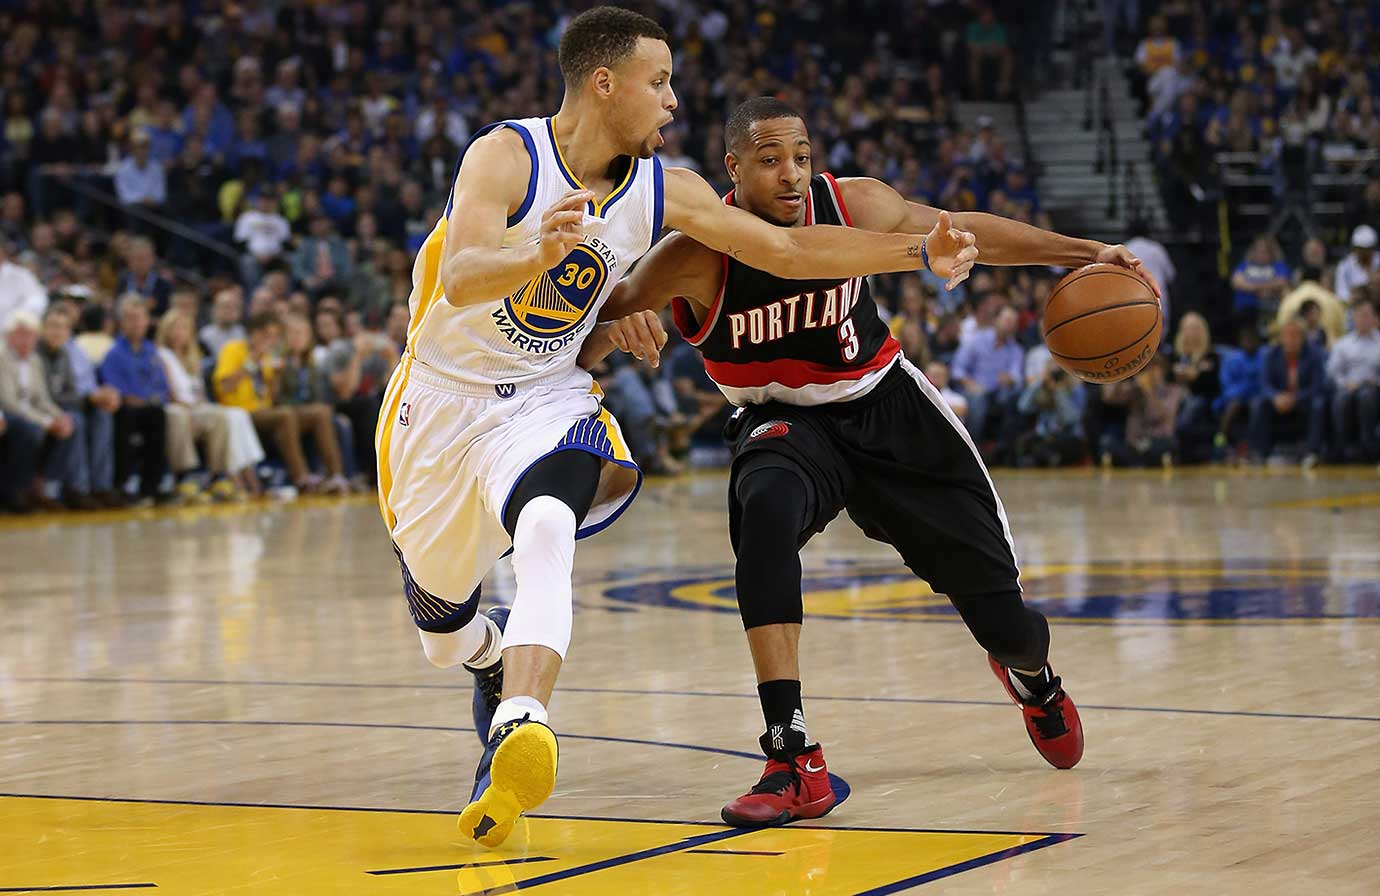 Stephen Curry of the Golden State Warriors tries to steal the ball from C.J. McCollum of the Portland Trail Blazers.